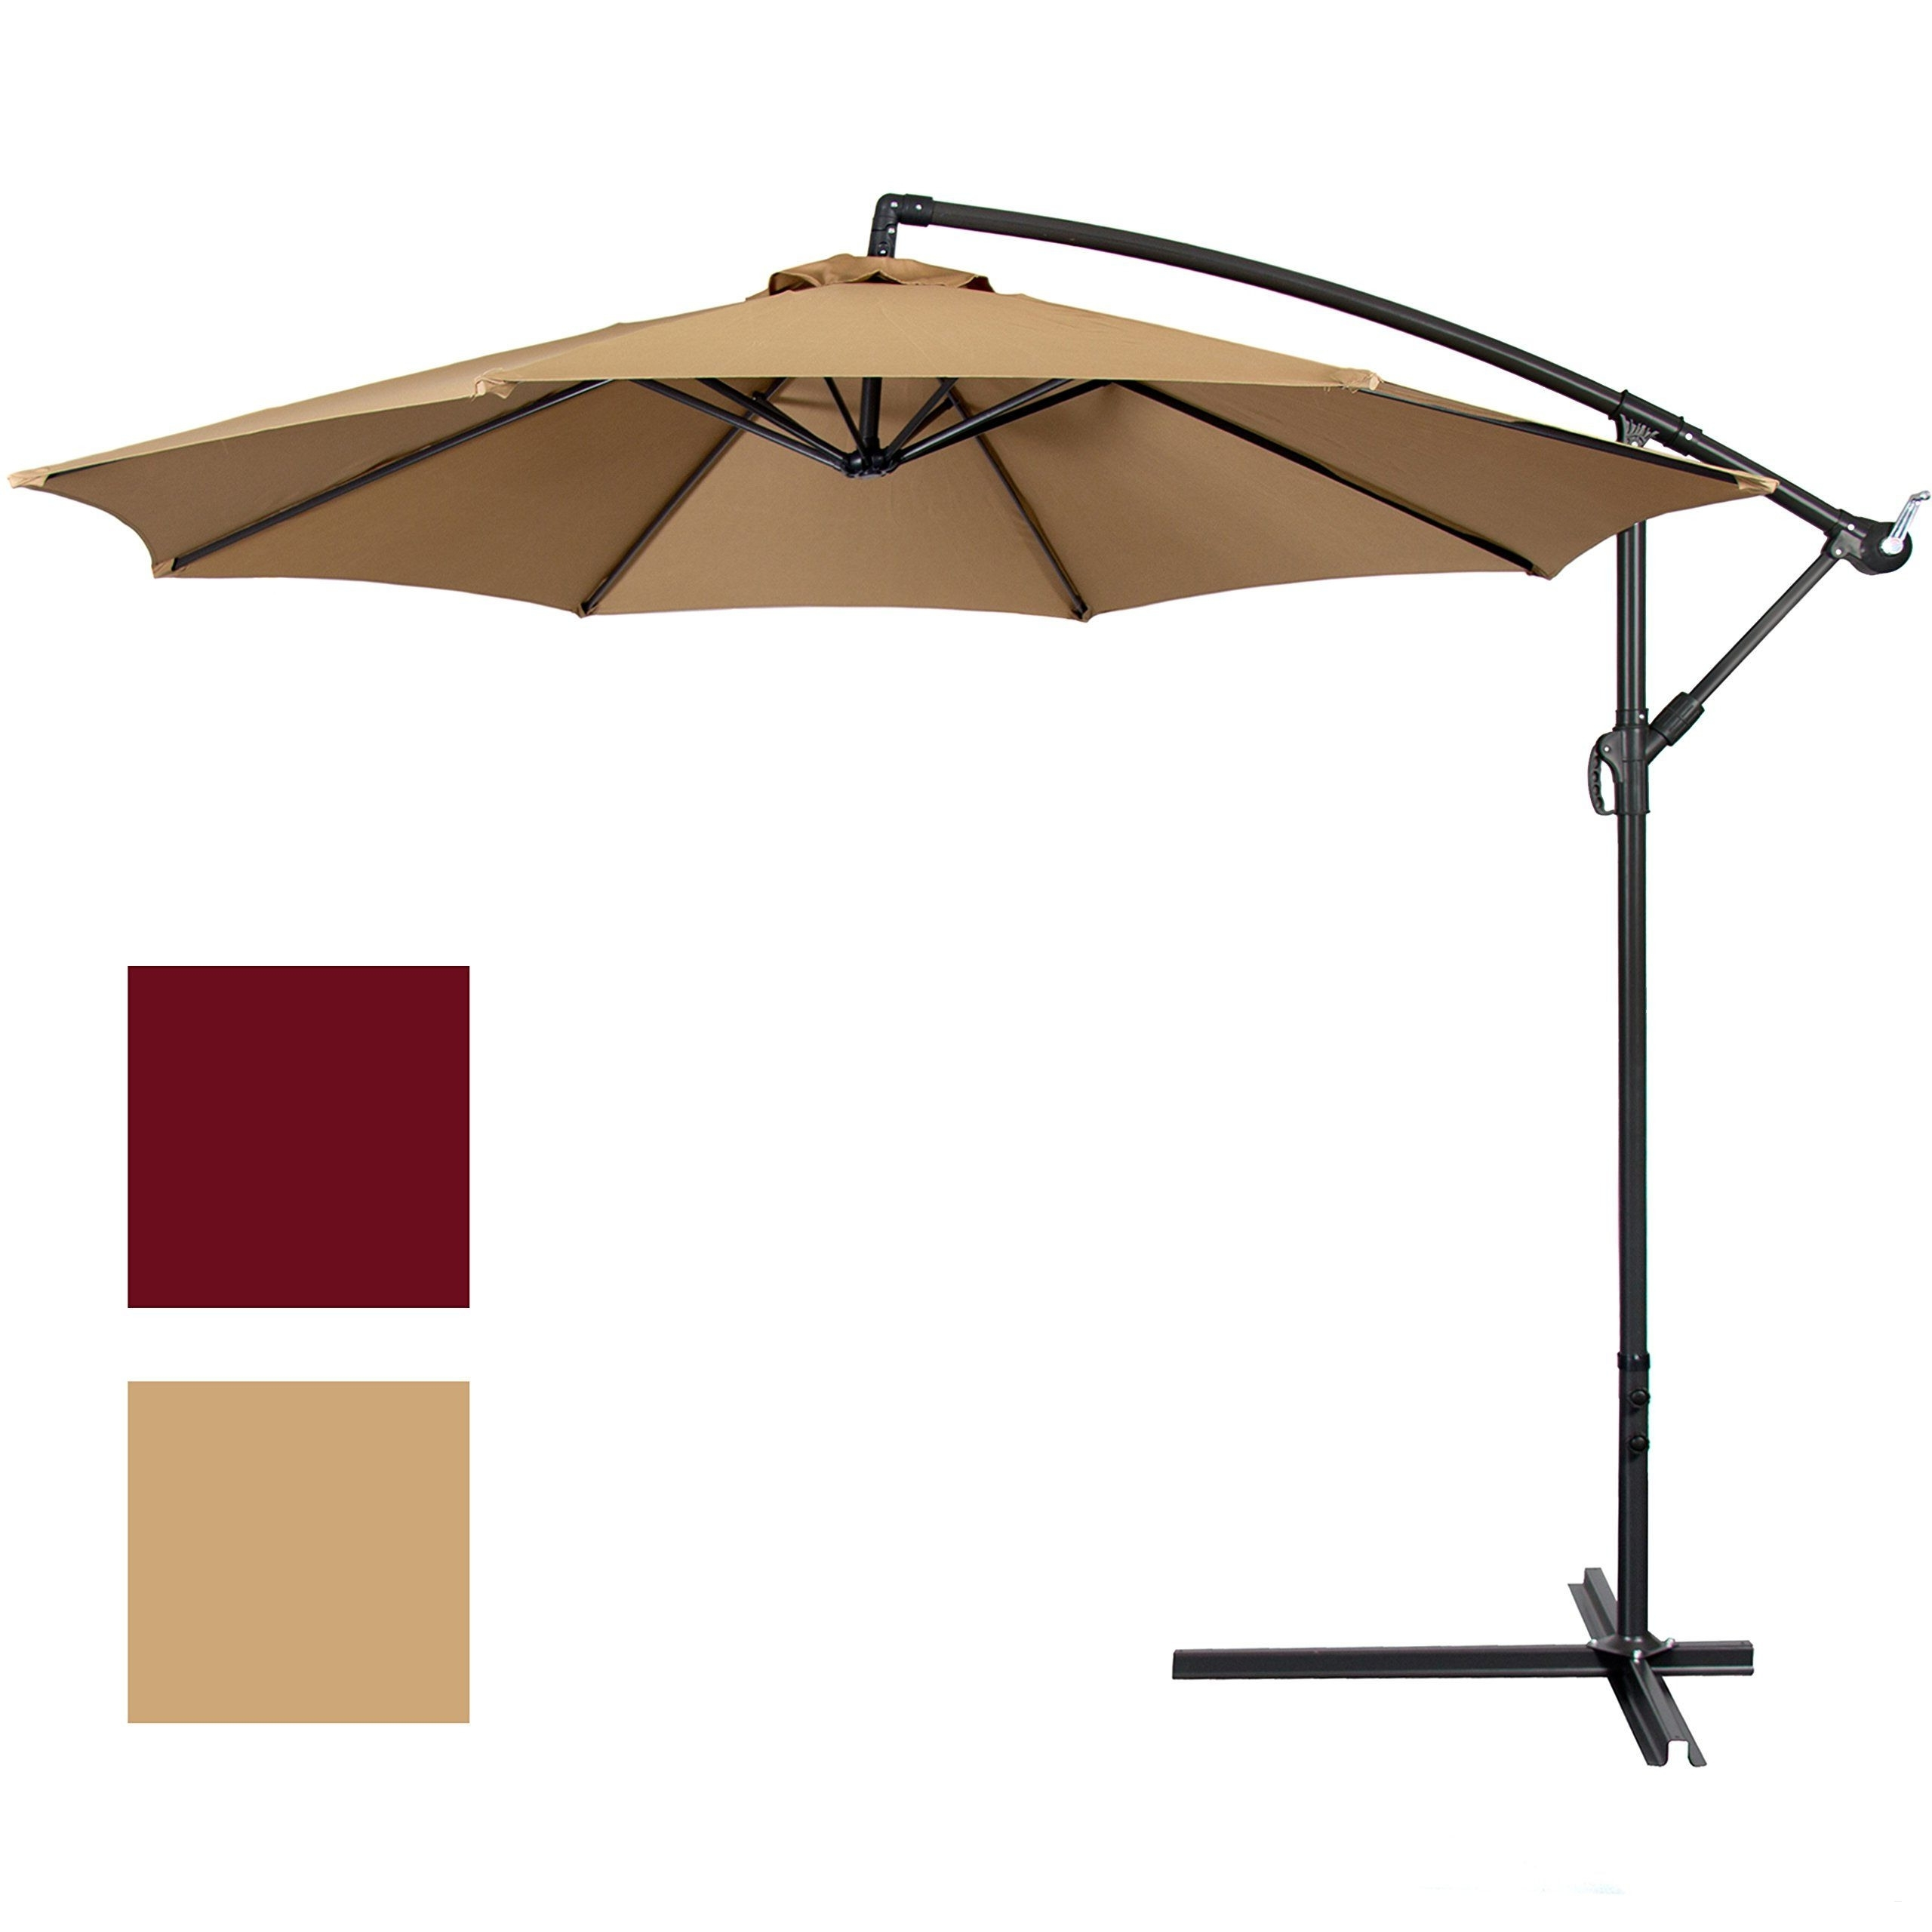 Preferred Offset Patio Umbrellas – Fabulous Best Choice Products Fset 10 In Hanging Patio Umbrellas (Gallery 7 of 20)